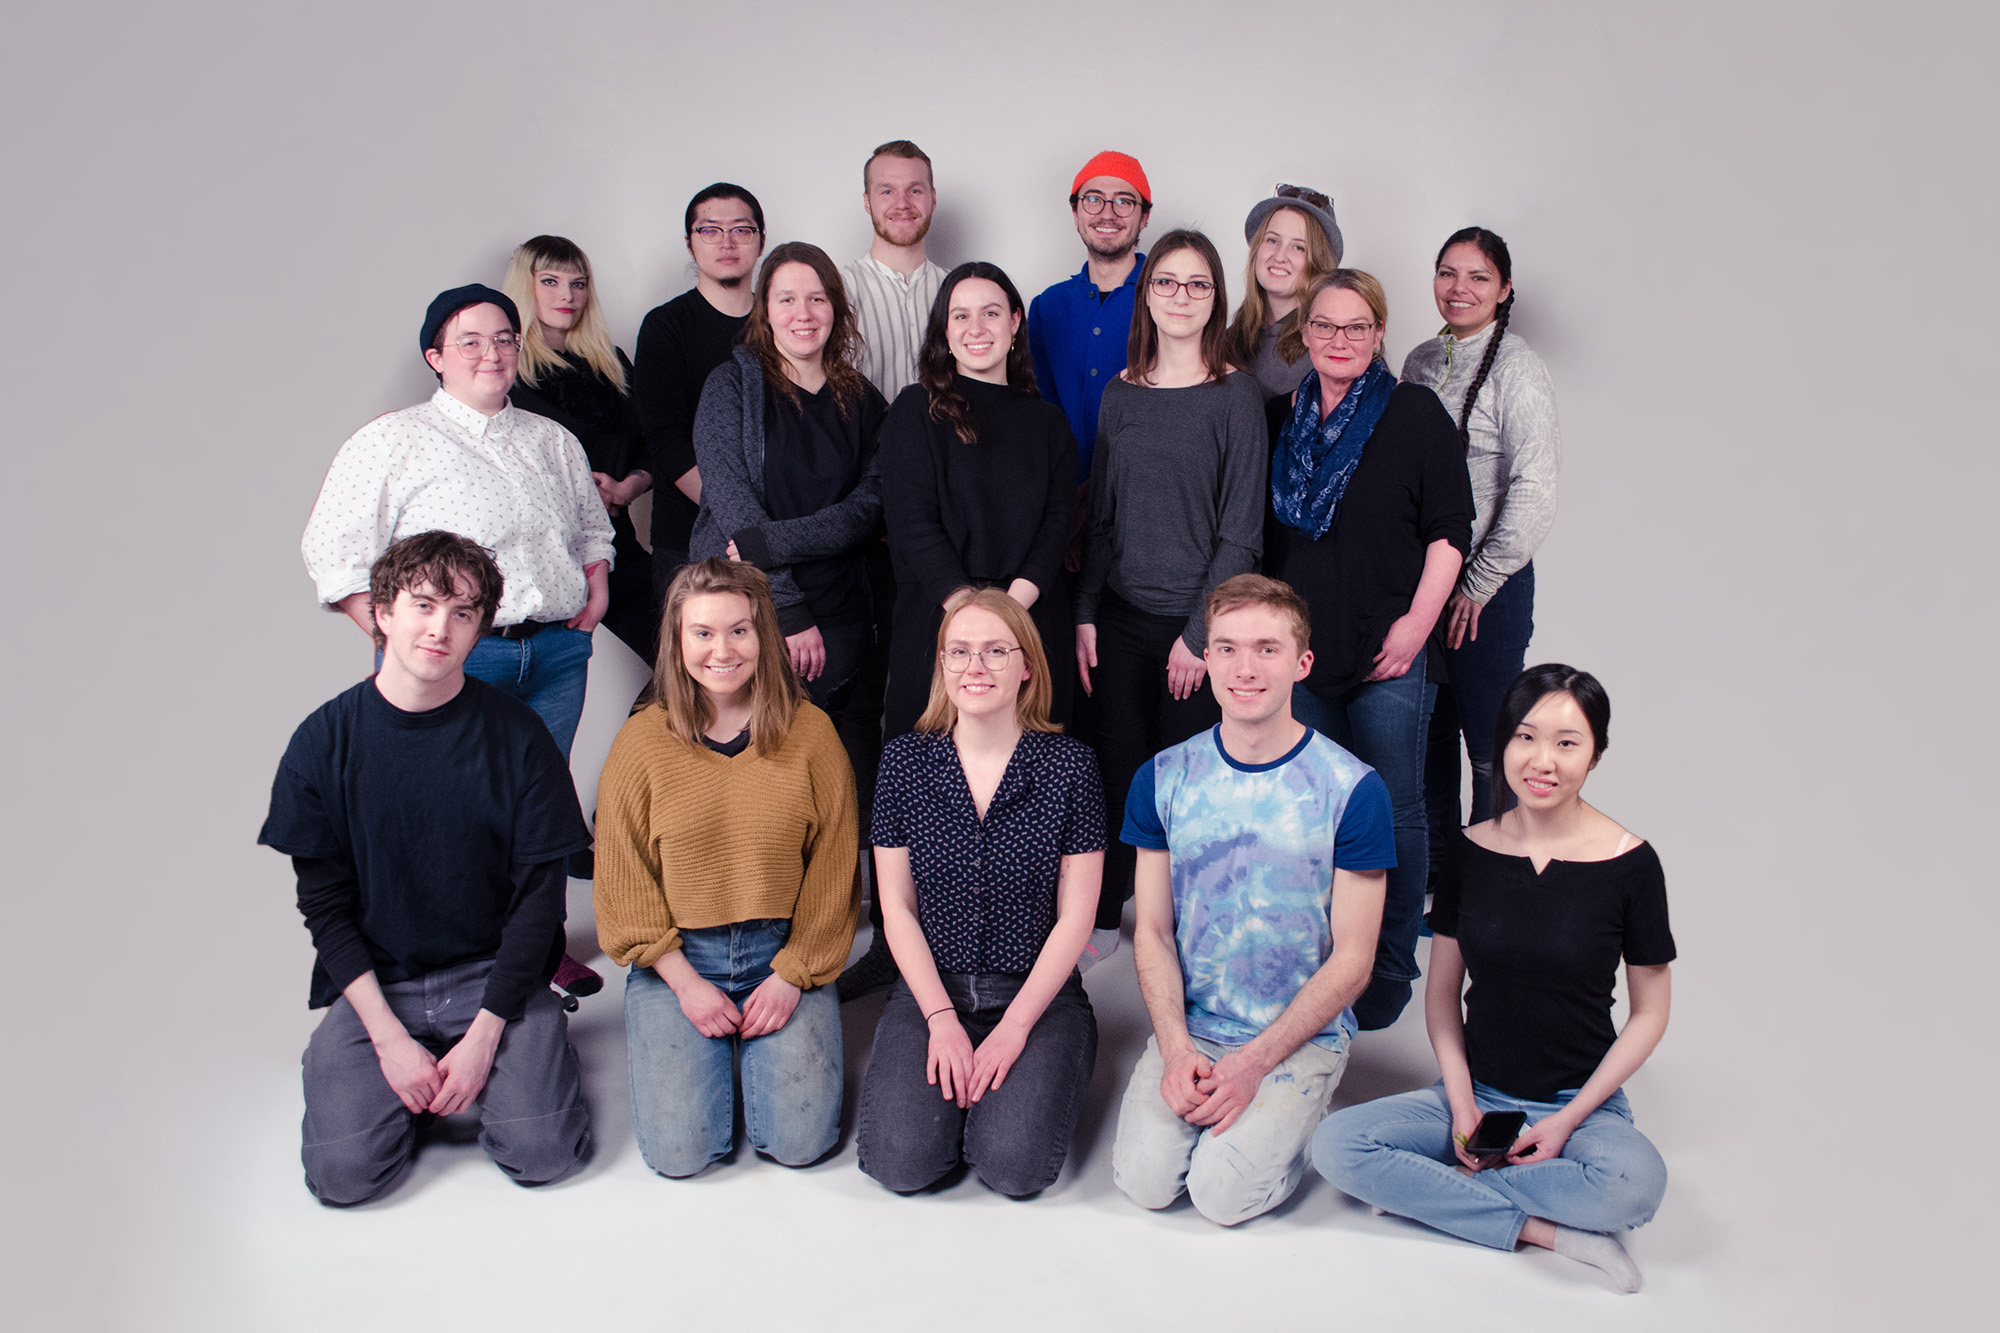 The 2019 BFA Grad Show runs April 23 - May 4. See you at the opening reception on April 25! Photo of 2019 grad class by Danielle McBeth